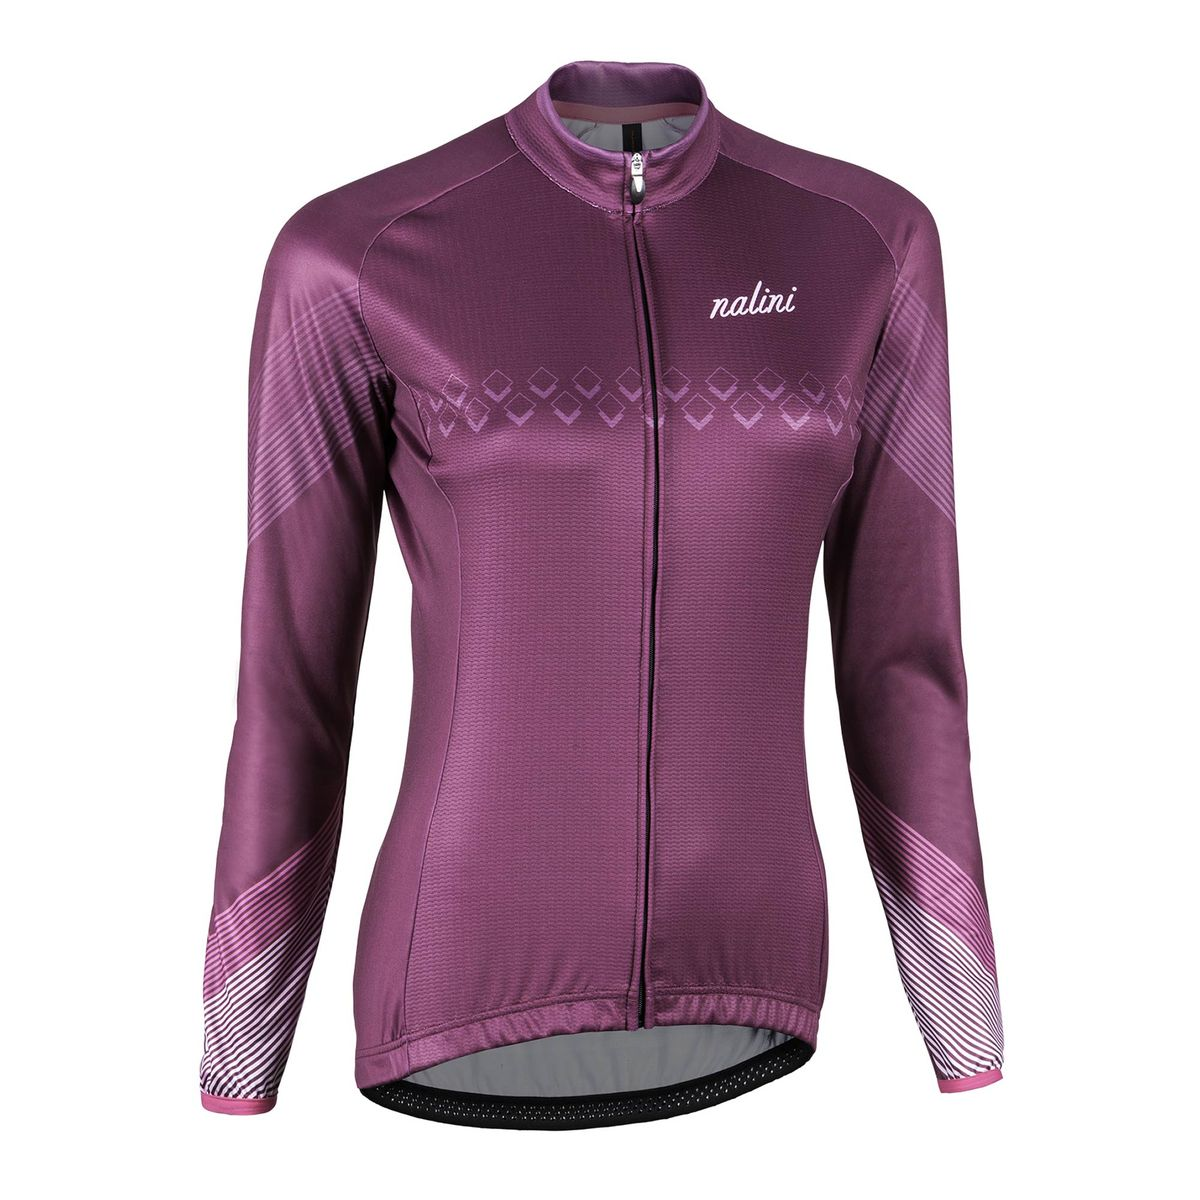 DENEBOLA women's thermal jersey